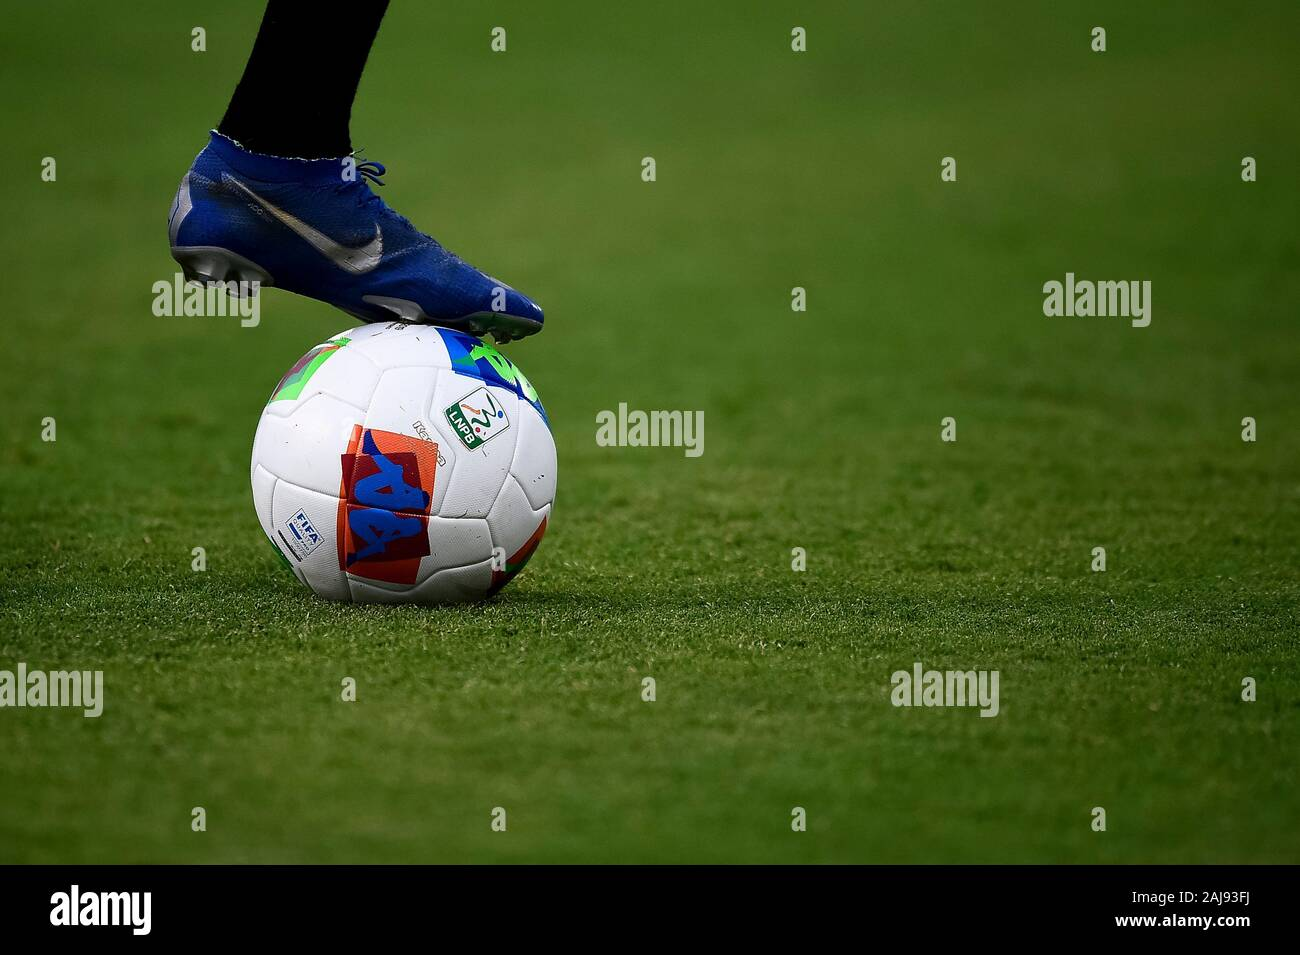 Page 3 Official Match Ball High Resolution Stock Photography And Images Alamy